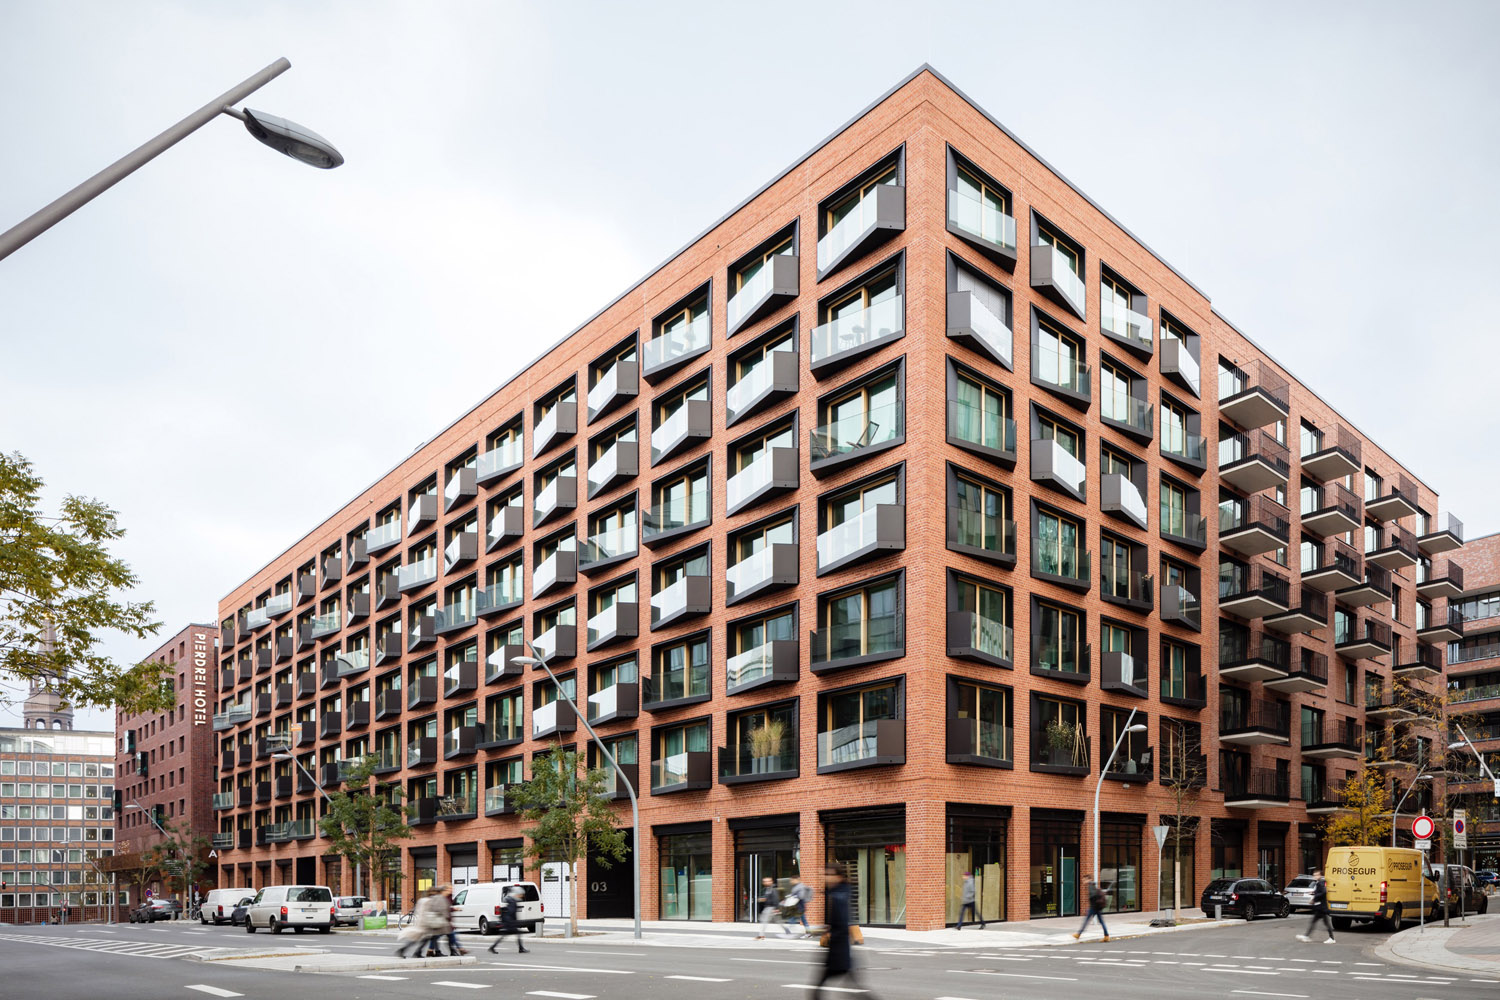 The mixed-use ensemble with around 220 apartments has retail and restaurant facilities at ground floor level Marcus Bredt